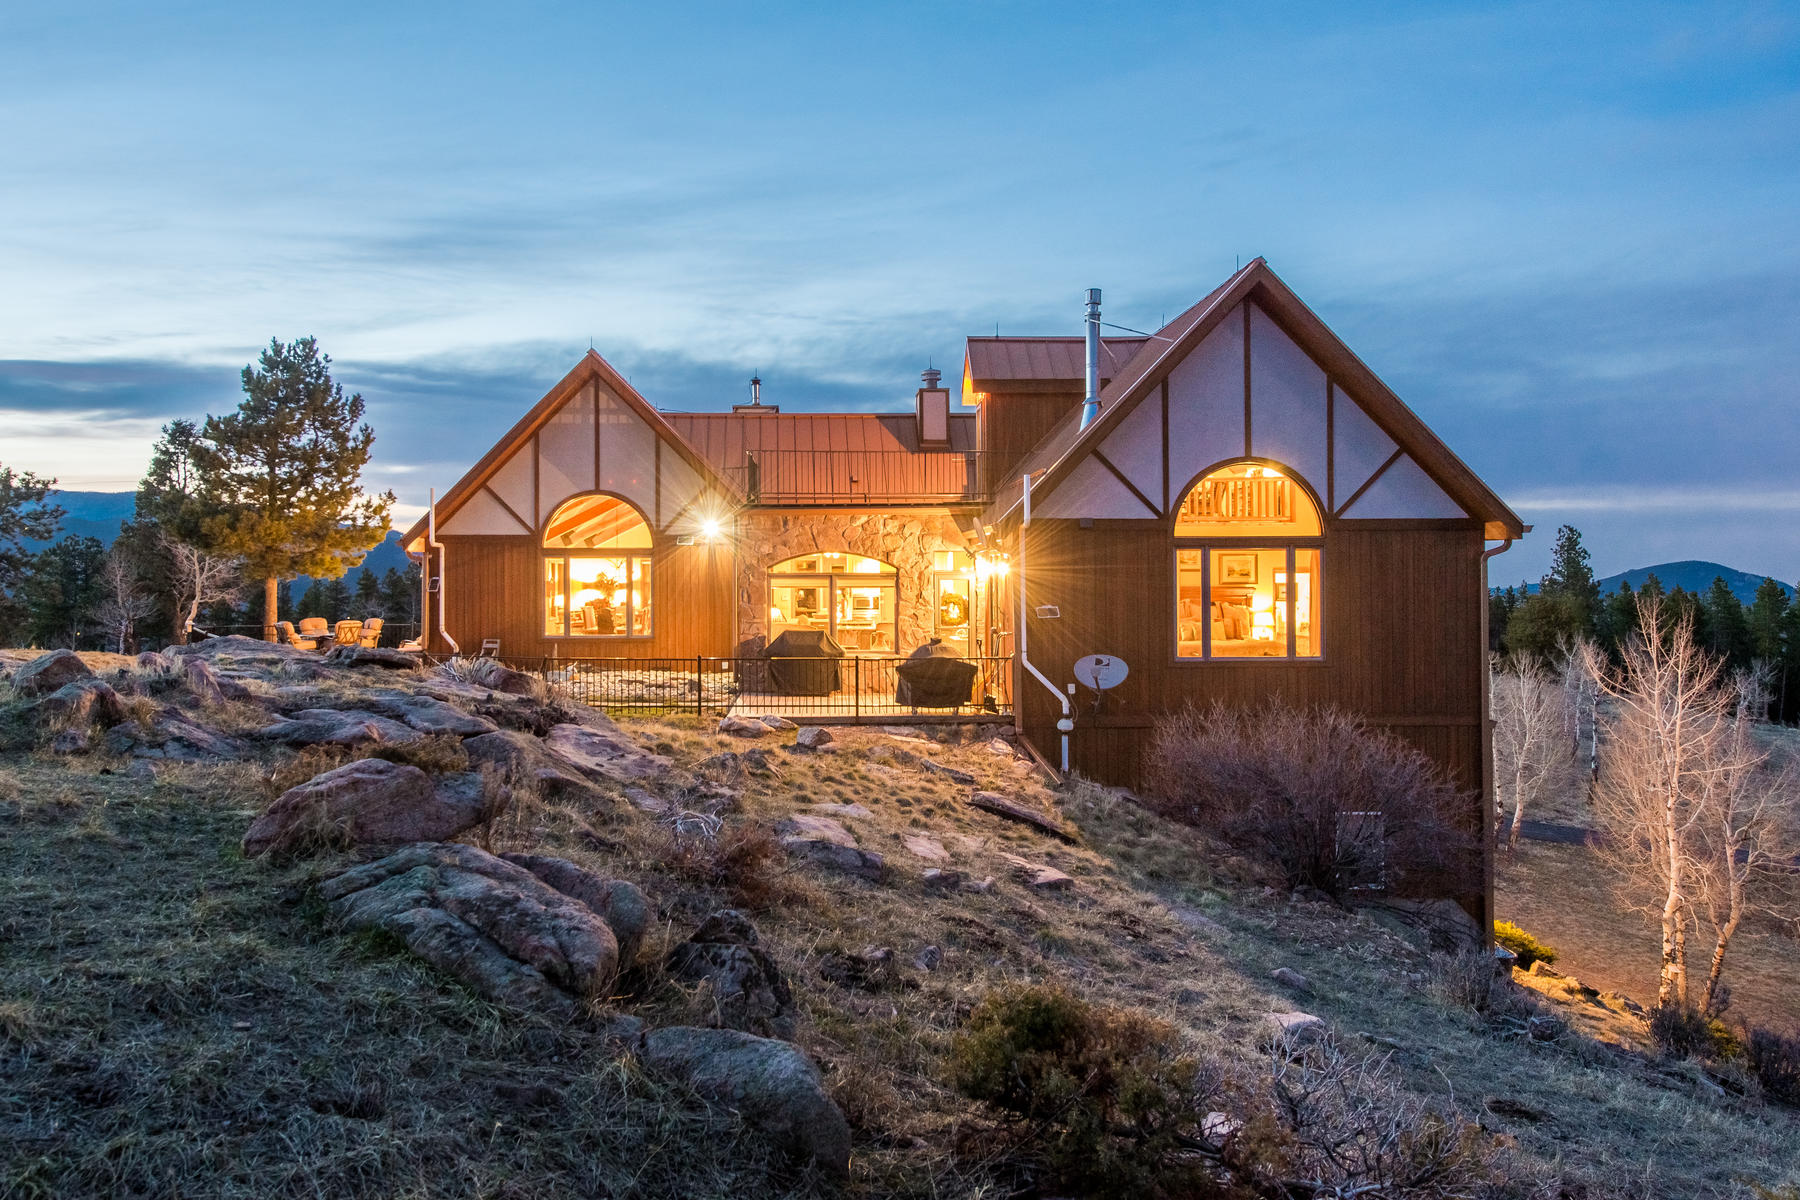 Single Family Home for Active at Stunning 10 Acre Home! 12441 Richmond Court Conifer, Colorado 80433 United States